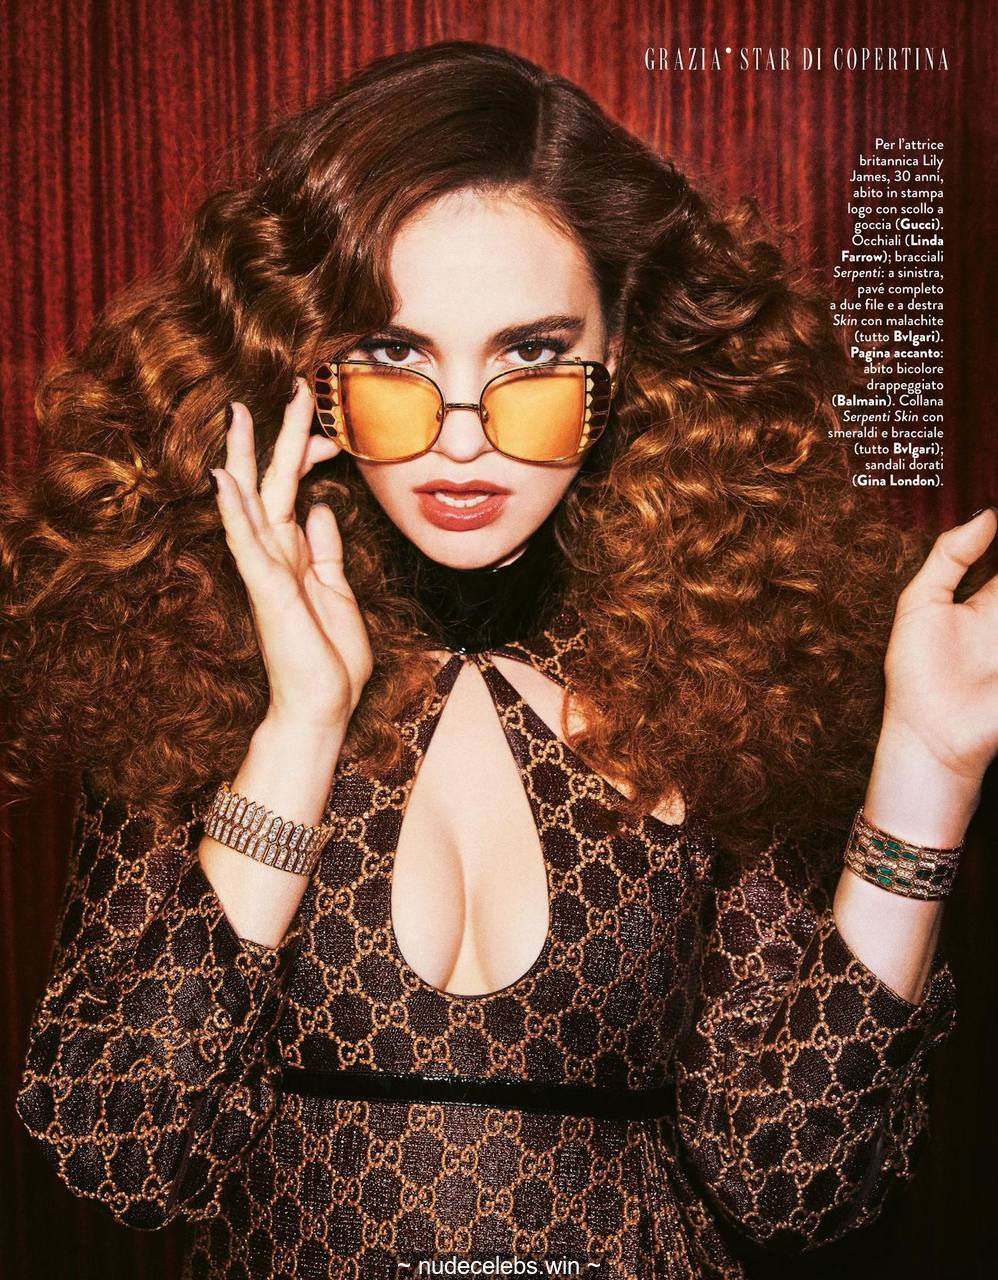 http://nudecelebs.win/lily-james-sexy-and-see-through-for-grazia-magazine-italia-february-20-202 ...